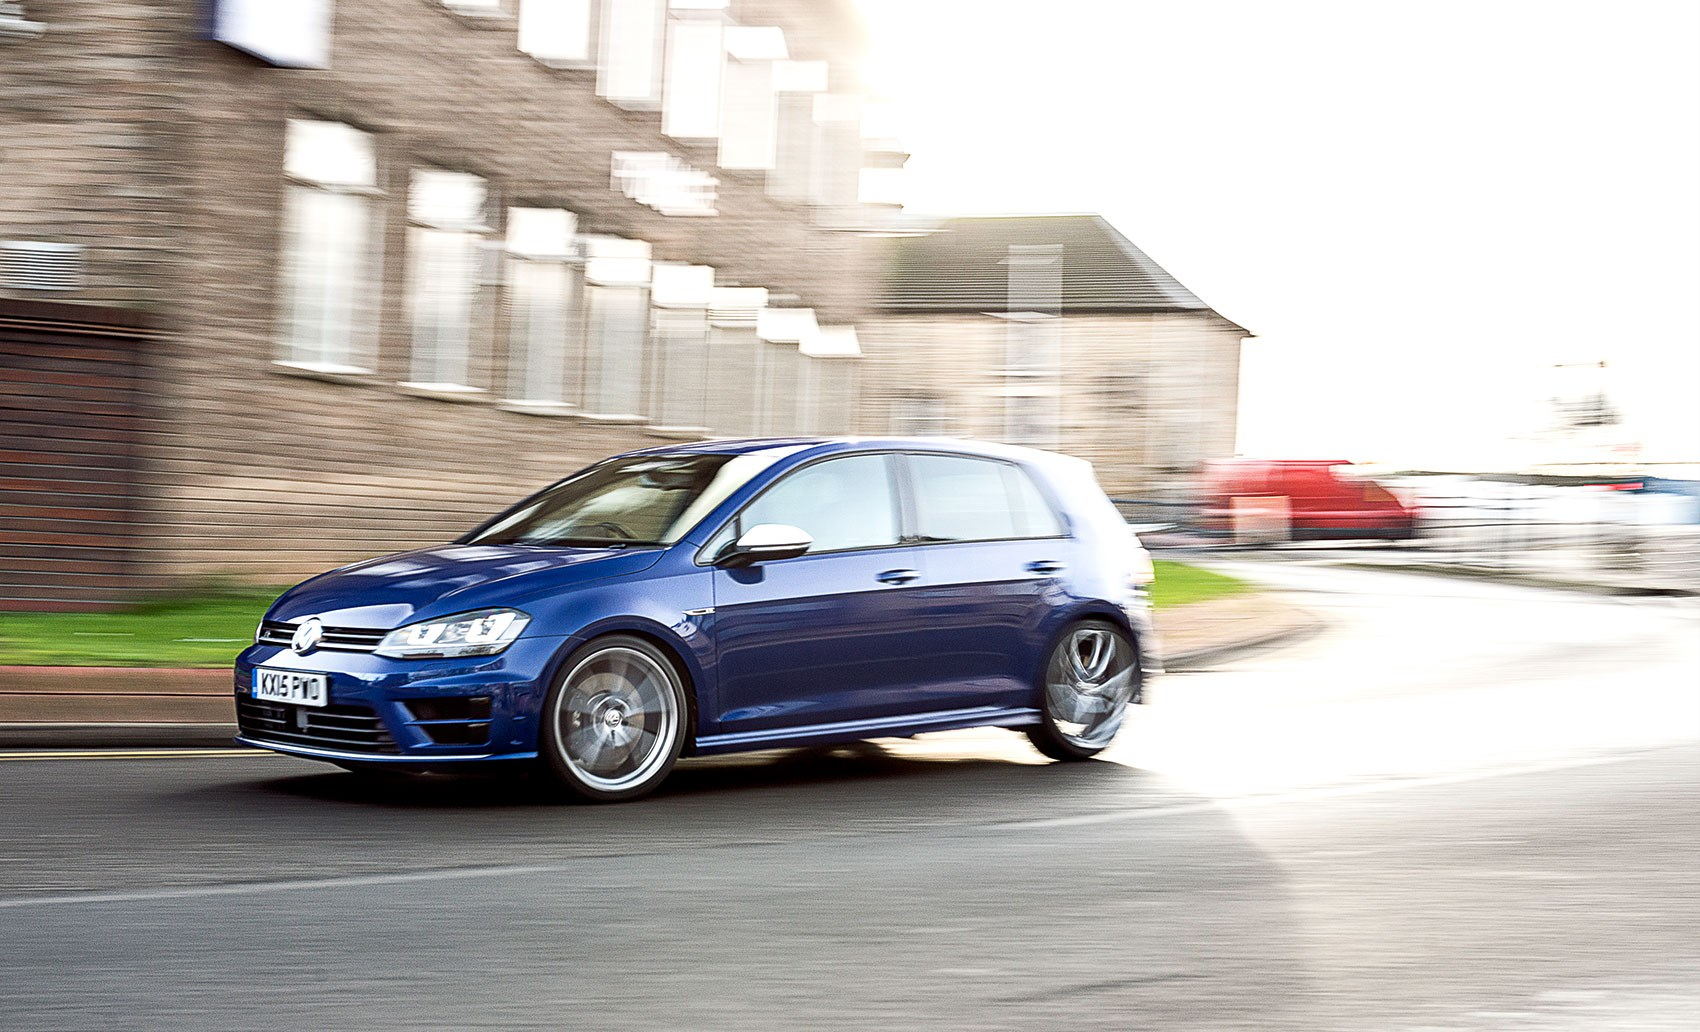 it s class vs thrills and class will out our cars vw golf r car rh carmagazine co uk vw golf dsg vs manual vw golf gtd dsg or manual